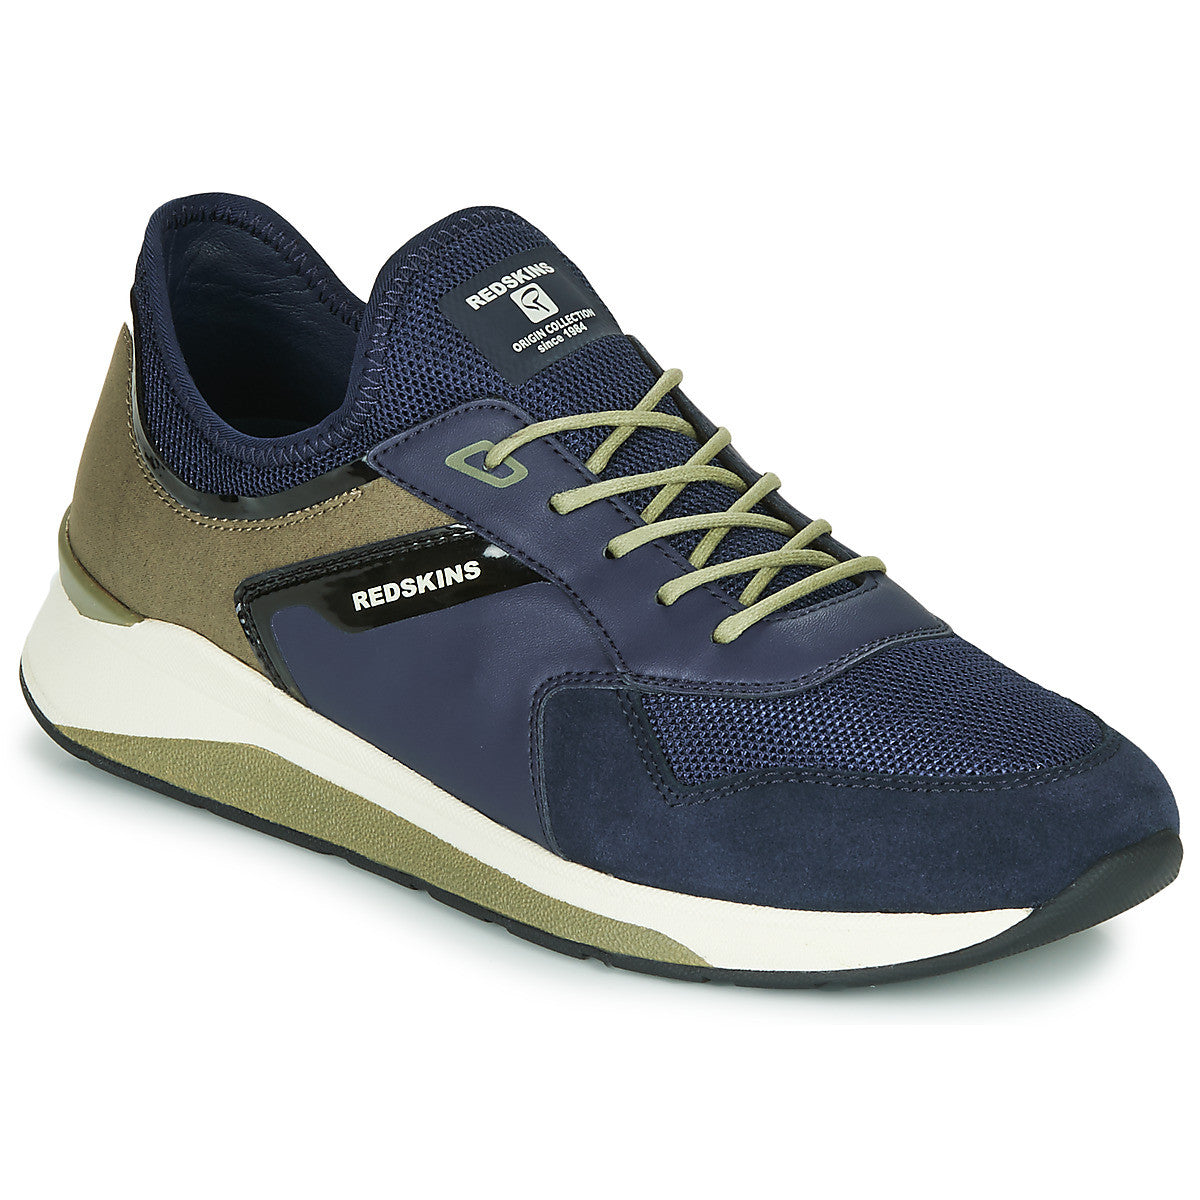 Shoes Men Casual | Navy